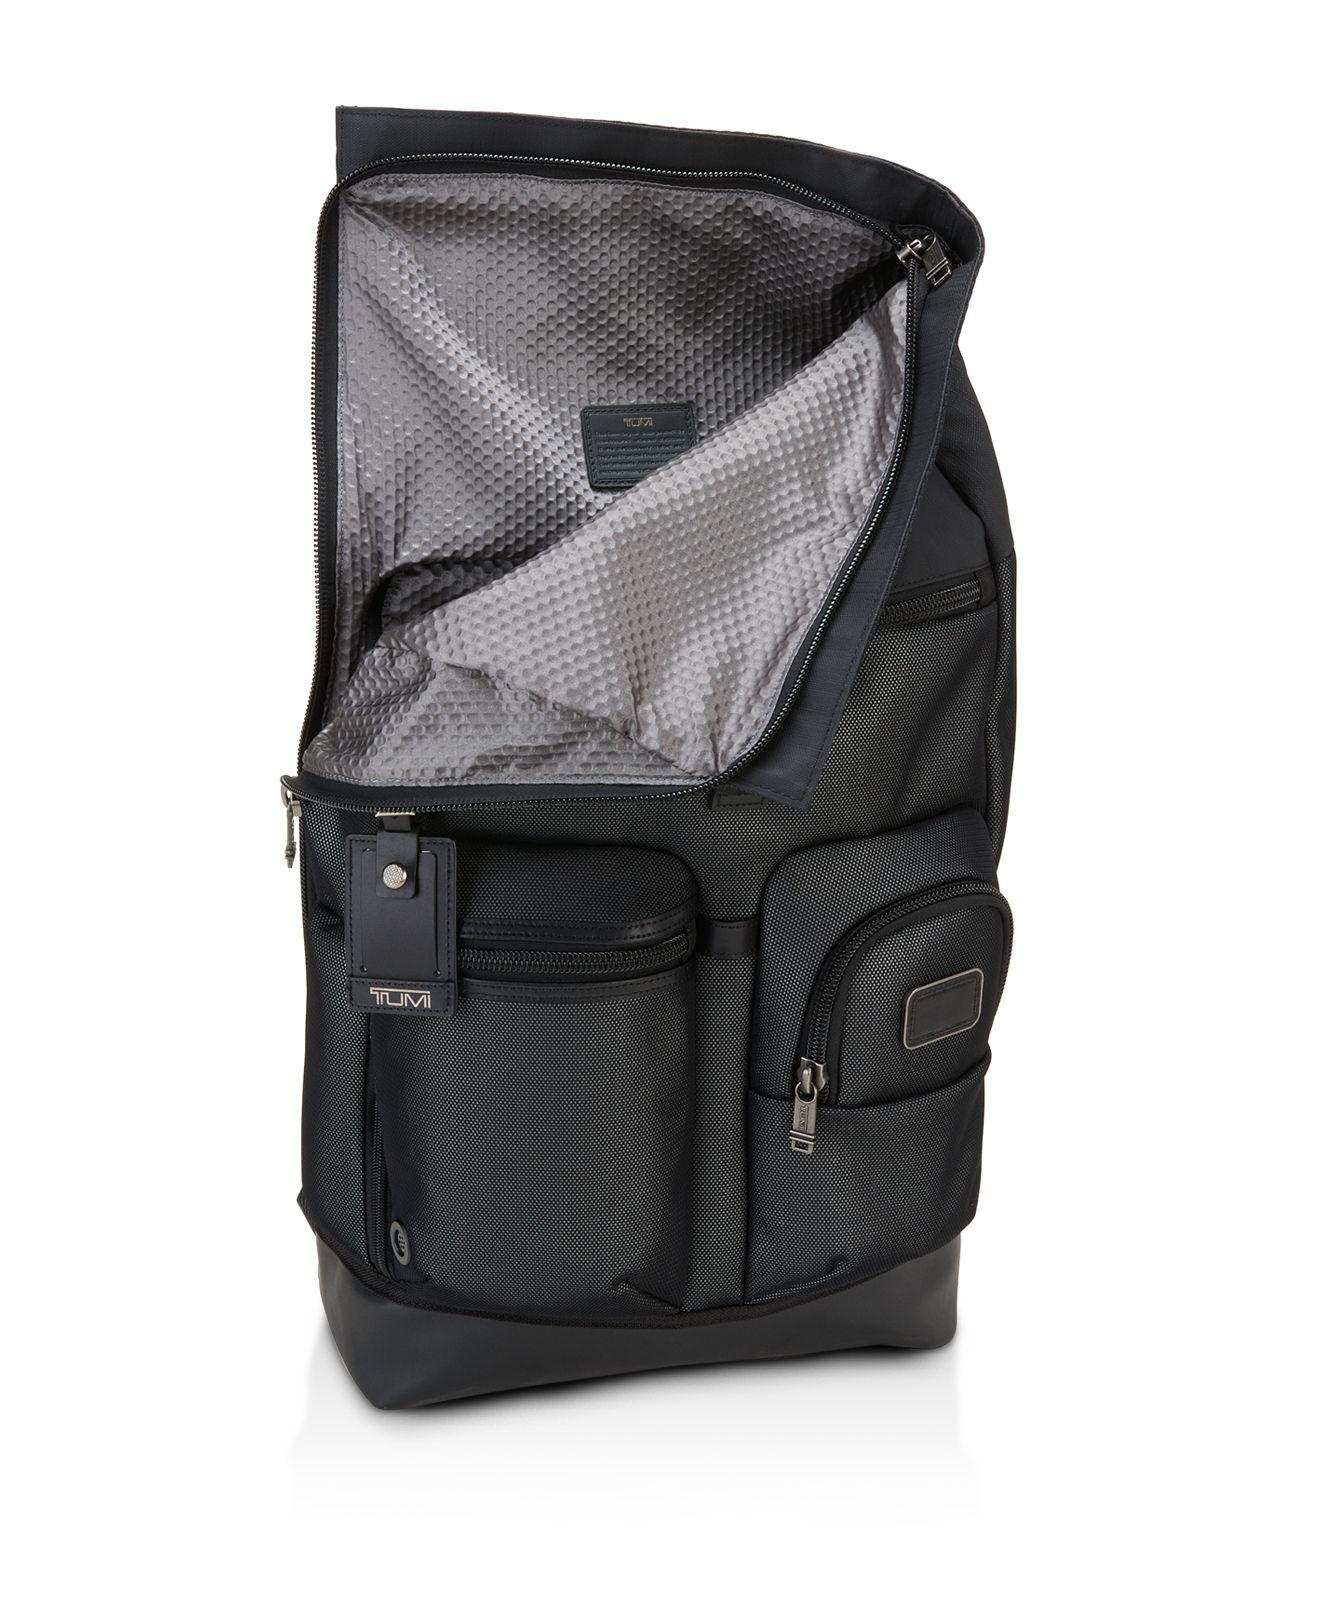 Lyst - Tumi Alpha Bravo Reflective Luke Roll-top Backpack in Black ... e21f3f250fd54